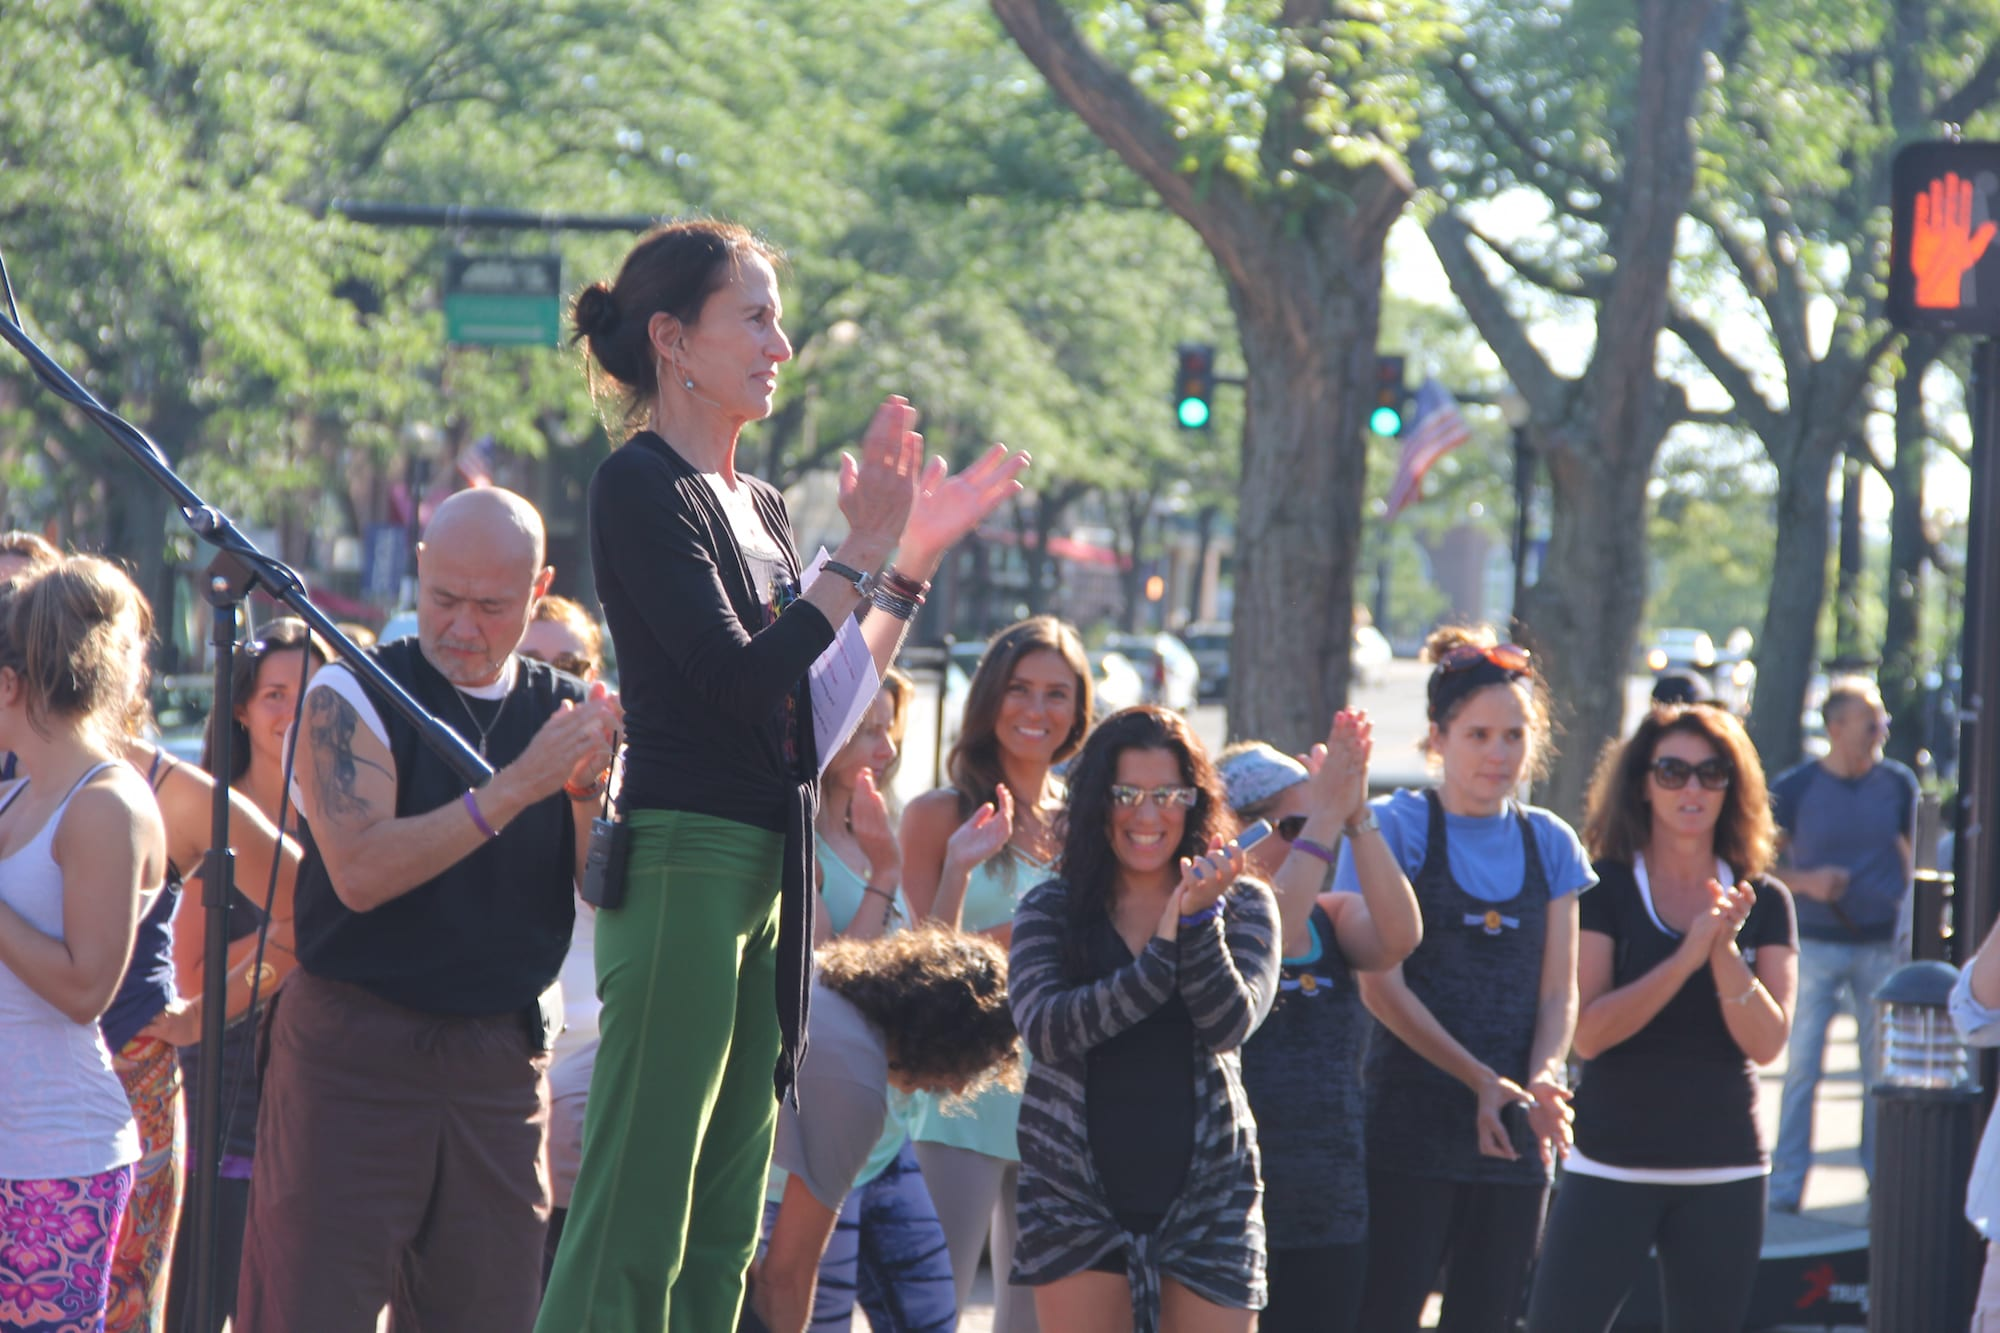 Om Street 2015, presented by West Hartford Yoga on LaSalle Road, July 25, 2015. Barbara Ruzansky surrounded by fellow instructors and participants. Photo by Amy Melvin